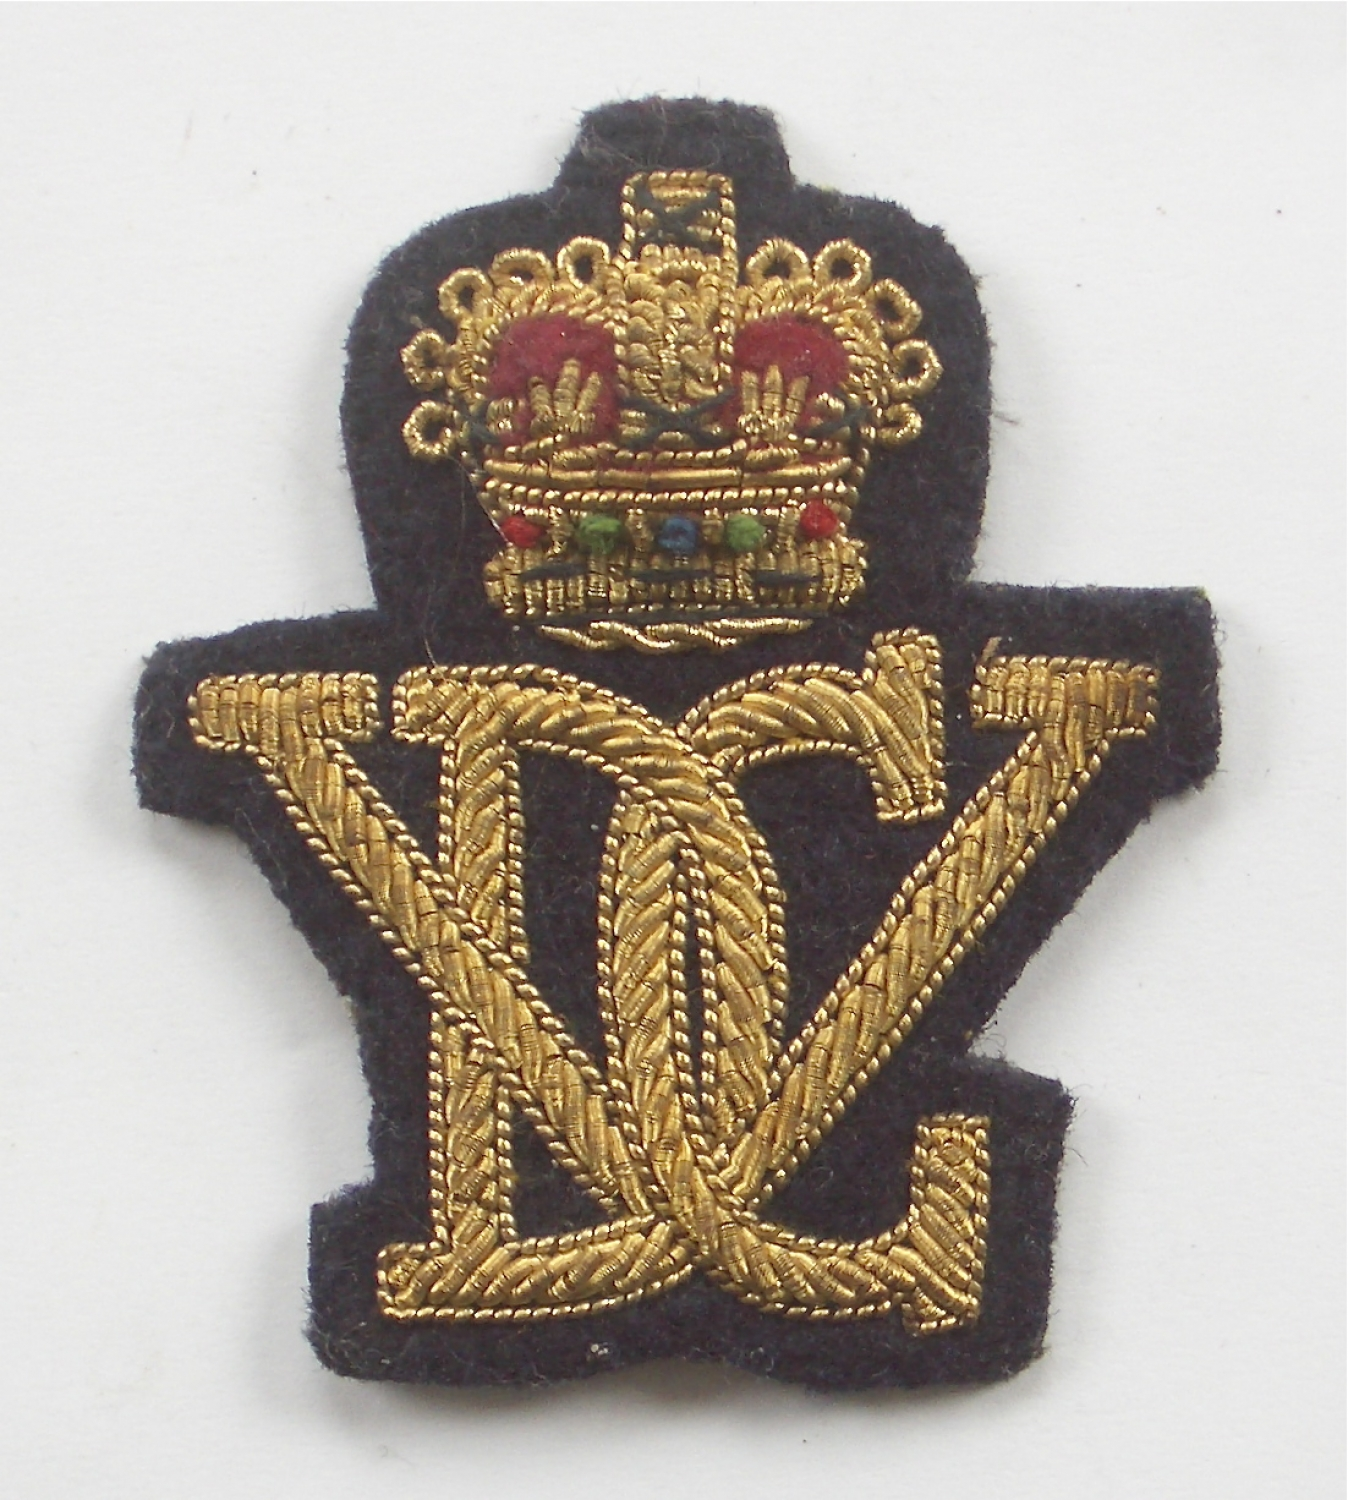 5th R. Inniskilling DG Officer's cap badge